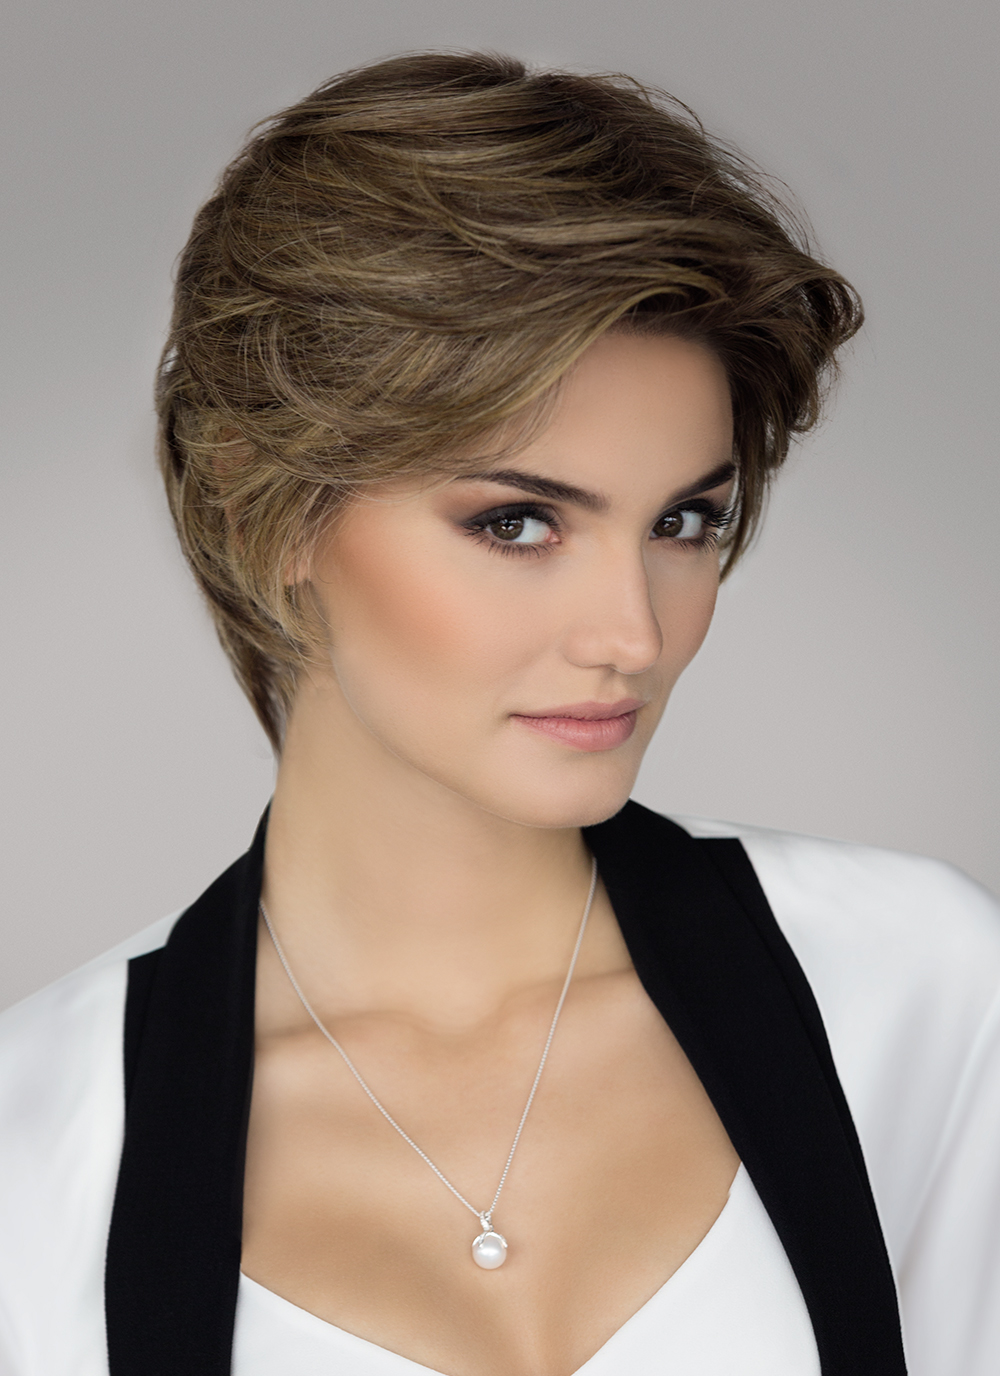 Allure | This perfectly designed short wig is full and can be styled straight or curly as it is made with Ellen Wille's innovative Prime Hair Blend